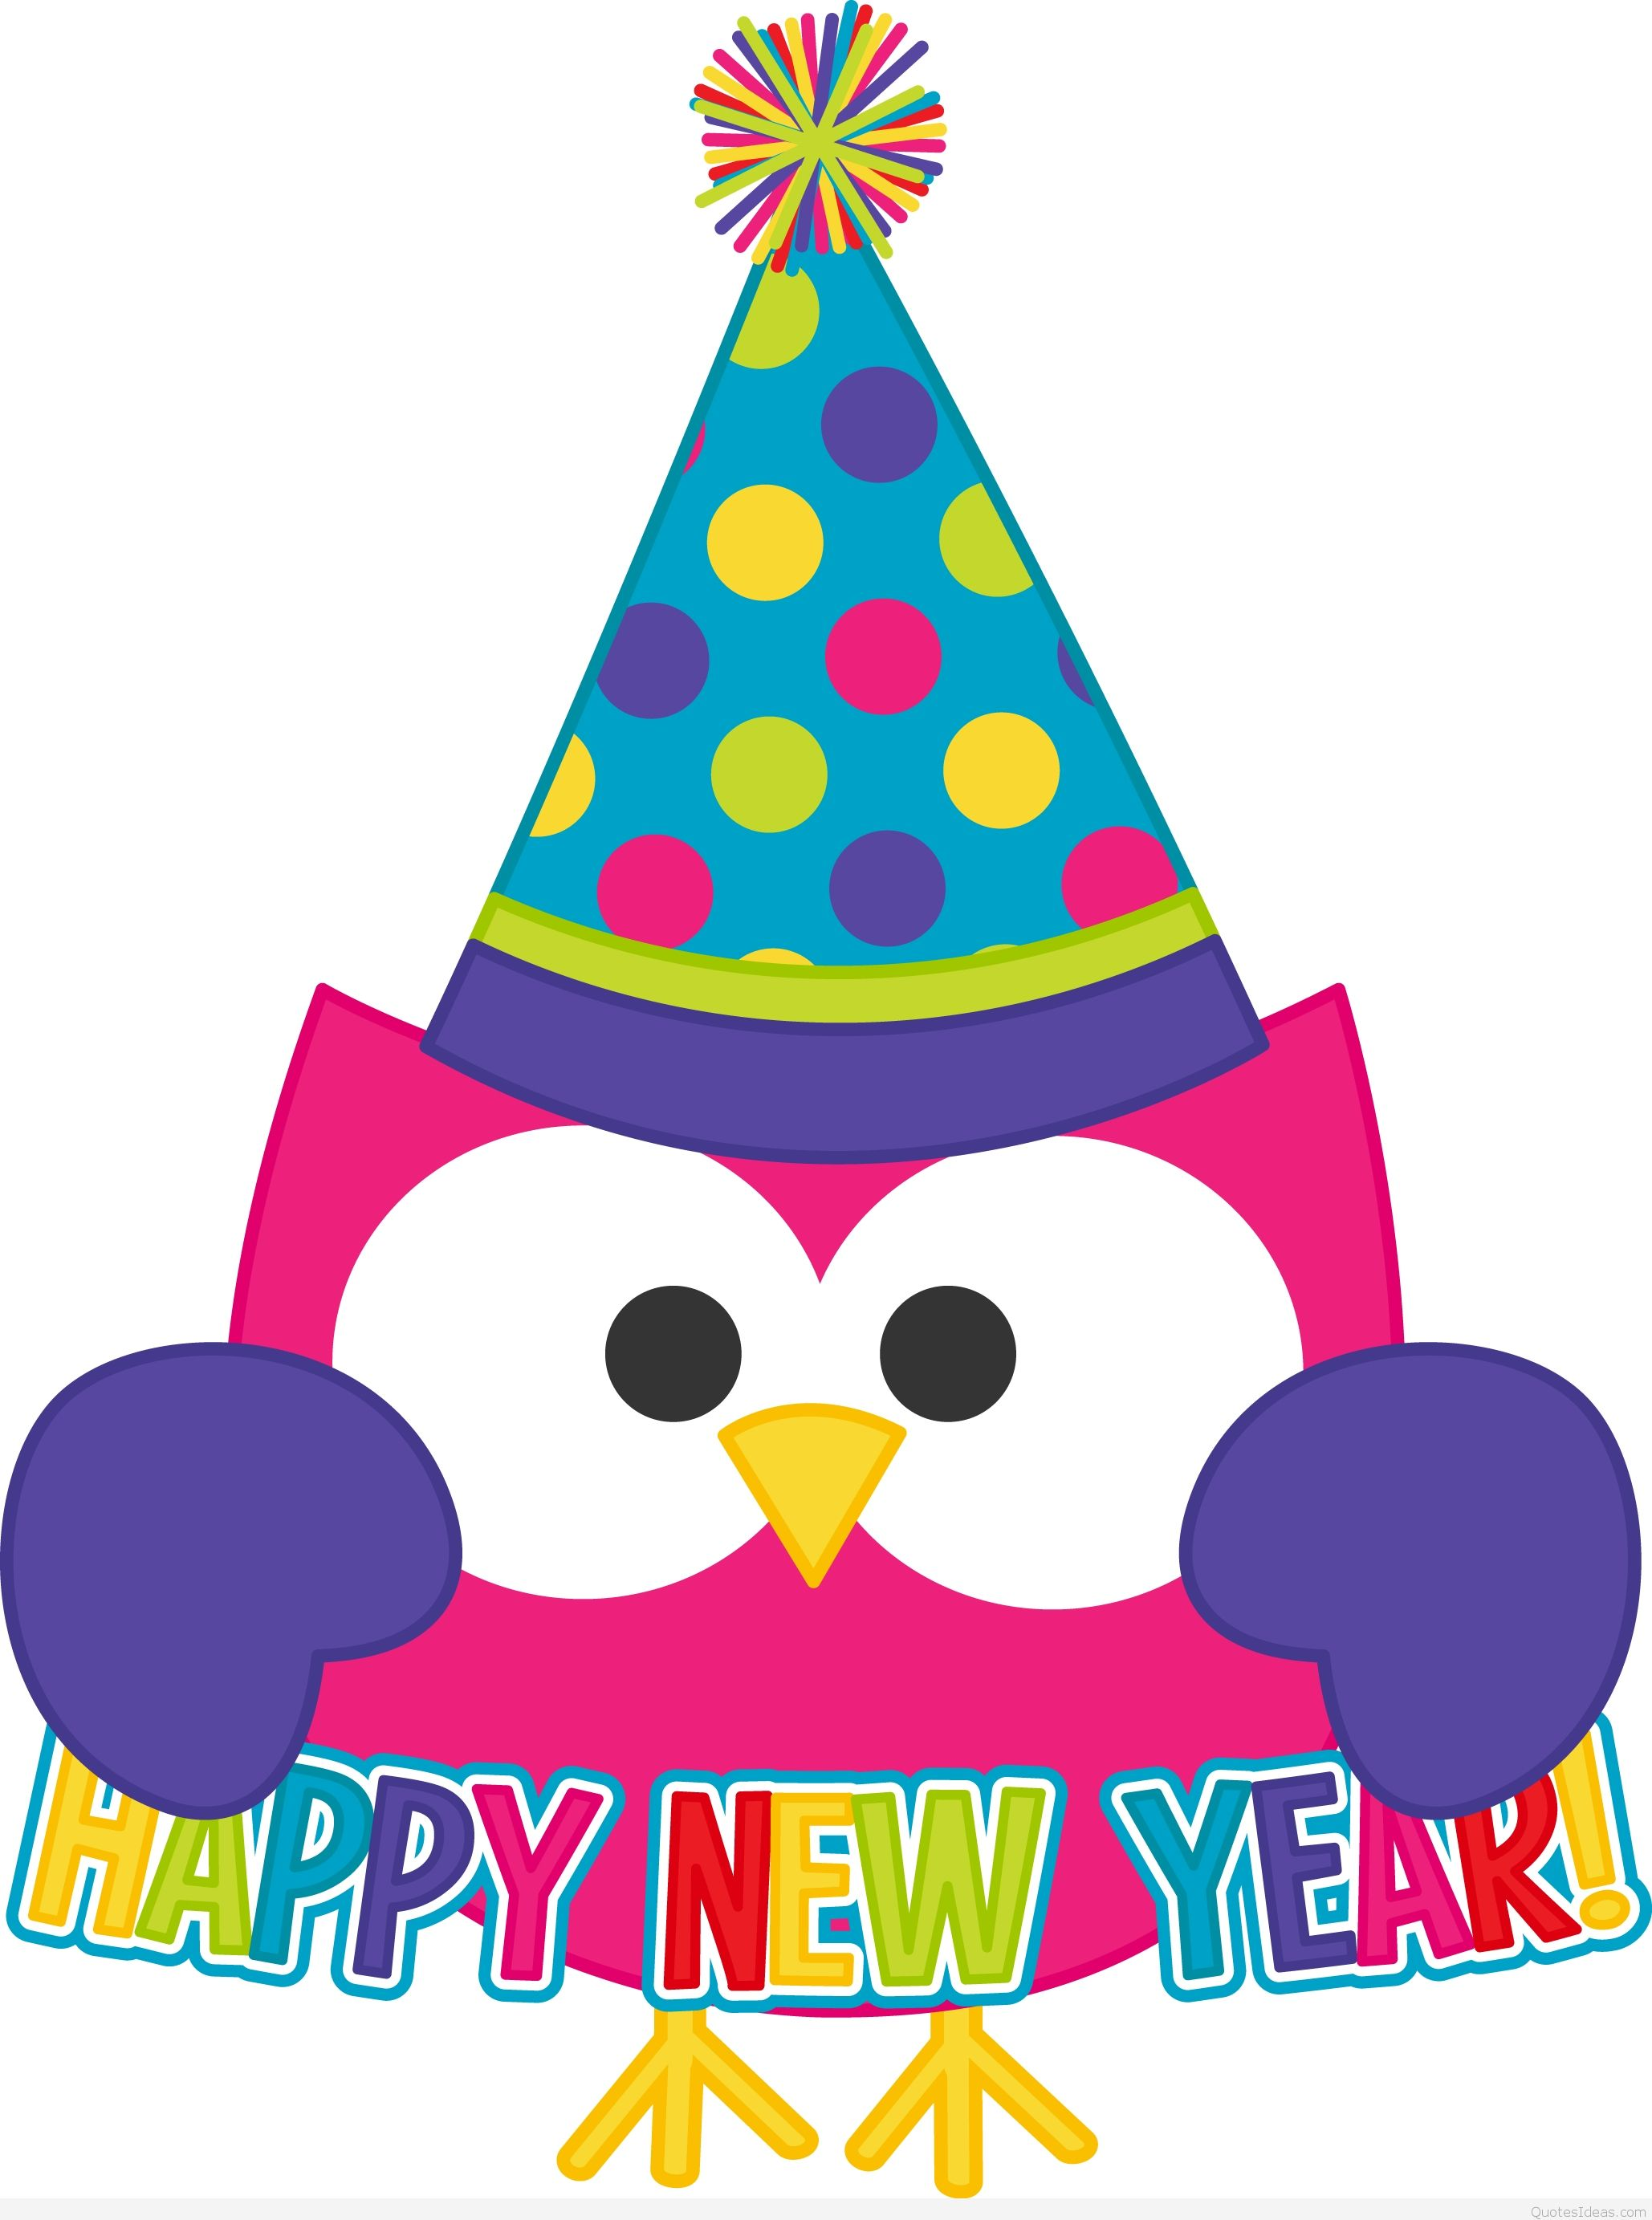 Happy new year greeting clipart svg royalty free library Free New Year Clip Art, Download Free Clip Art, Free Clip Art on ... svg royalty free library